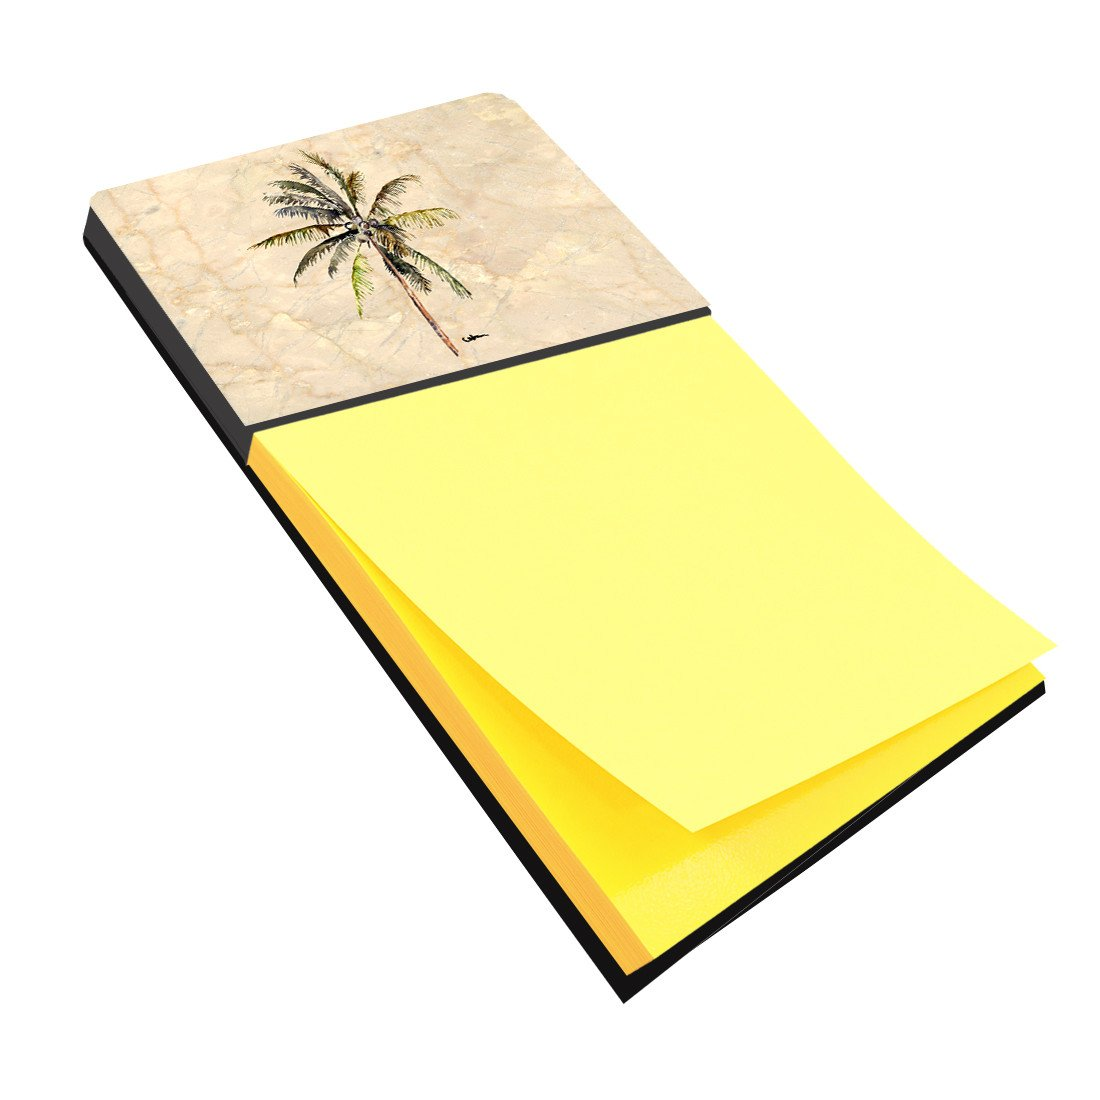 Palm Tree Refiillable Sticky Note Holder or Postit Note Dispenser 8482SN by Caroline's Treasures